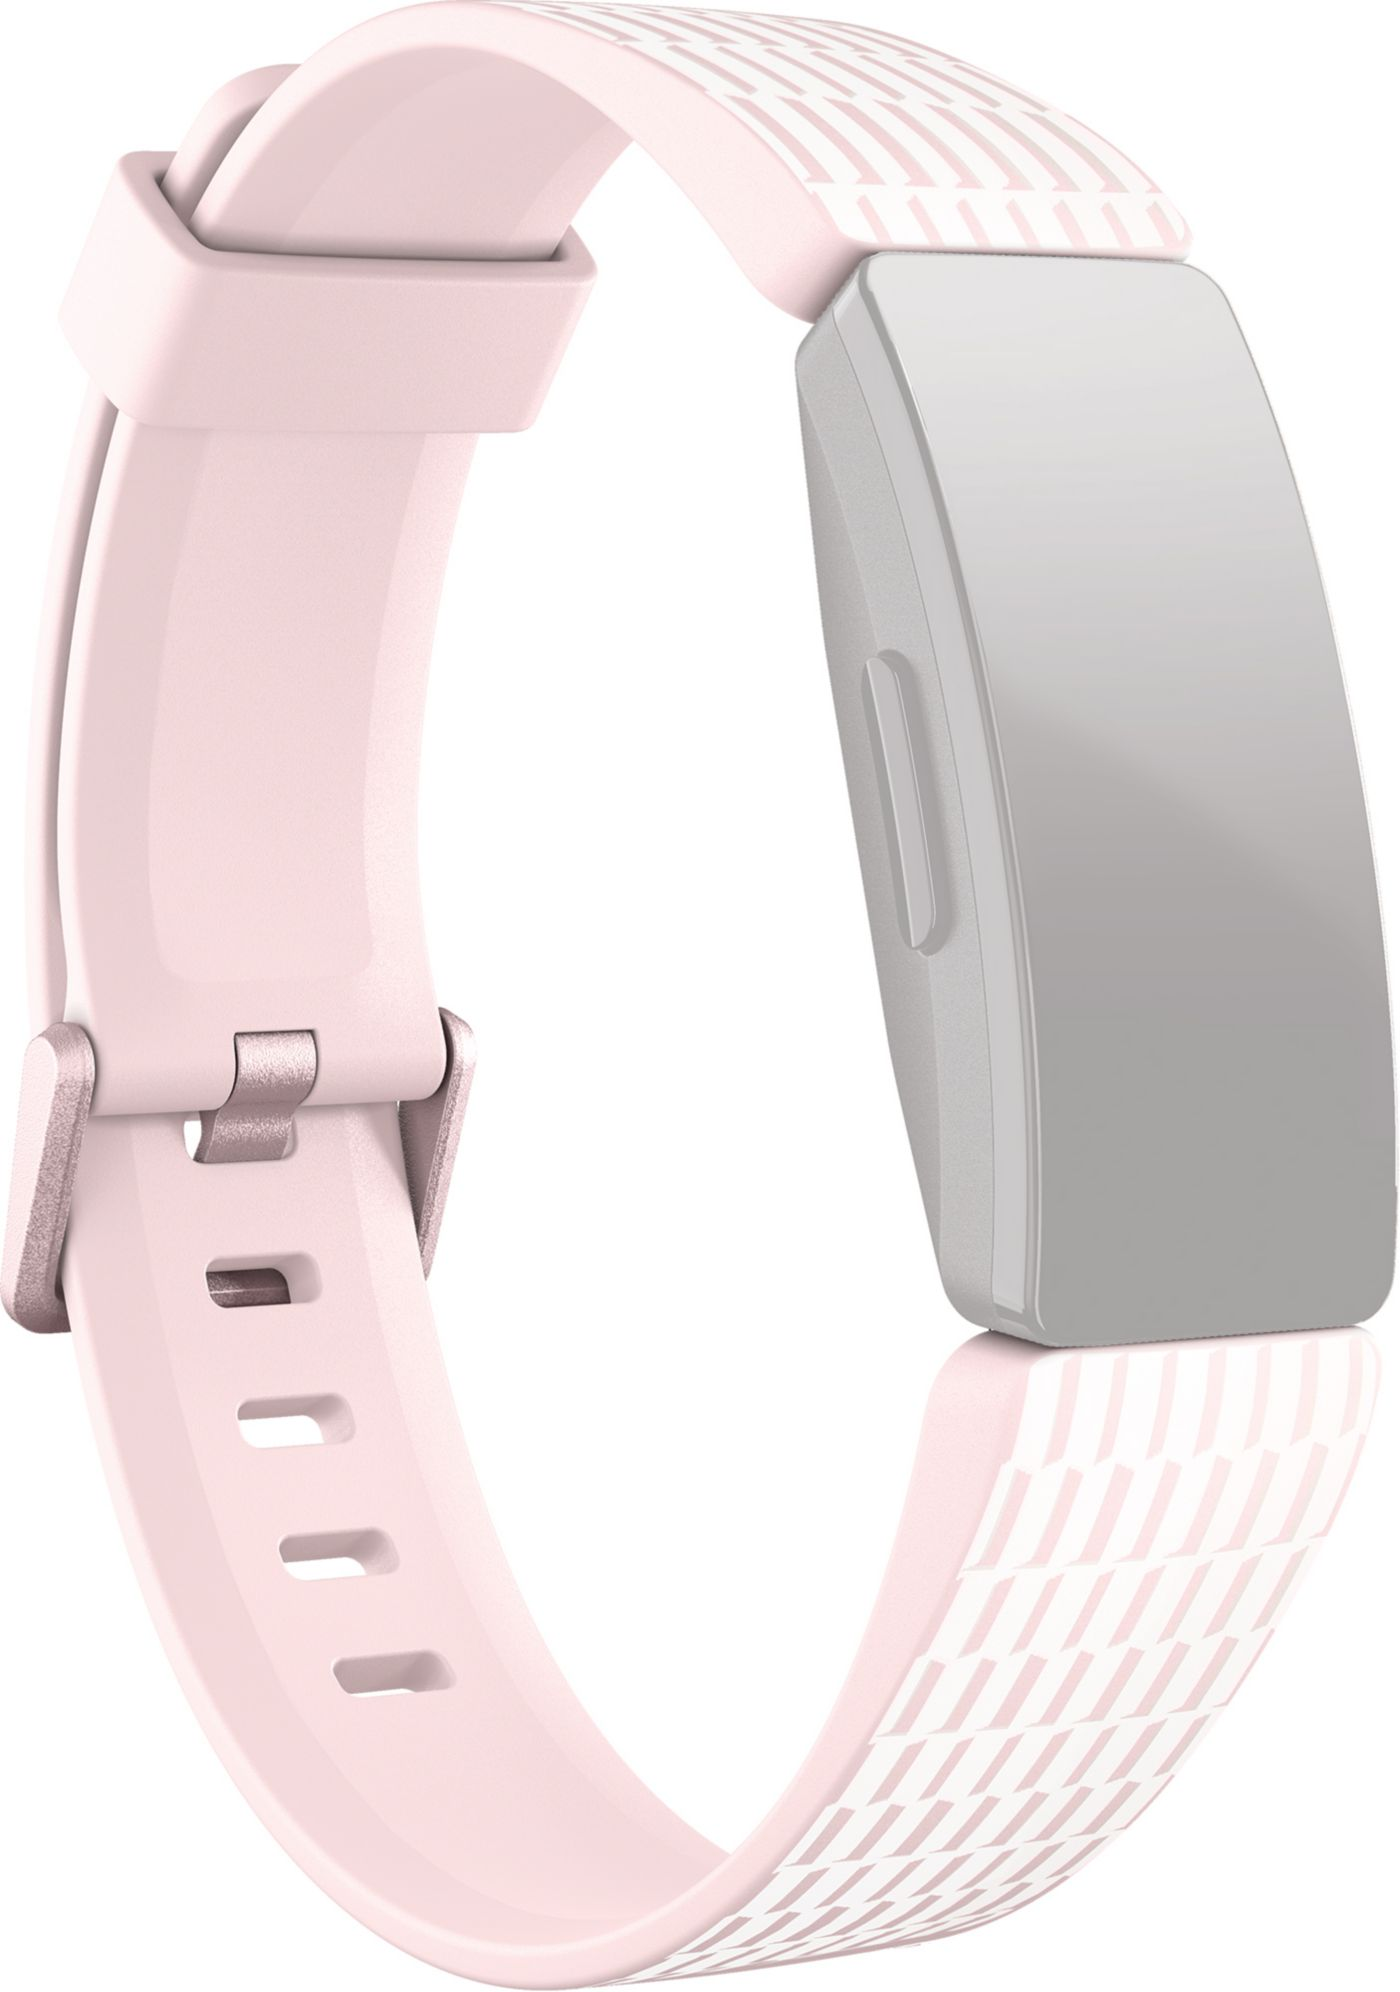 Fitbit Inspire Deco Print Accessory Band